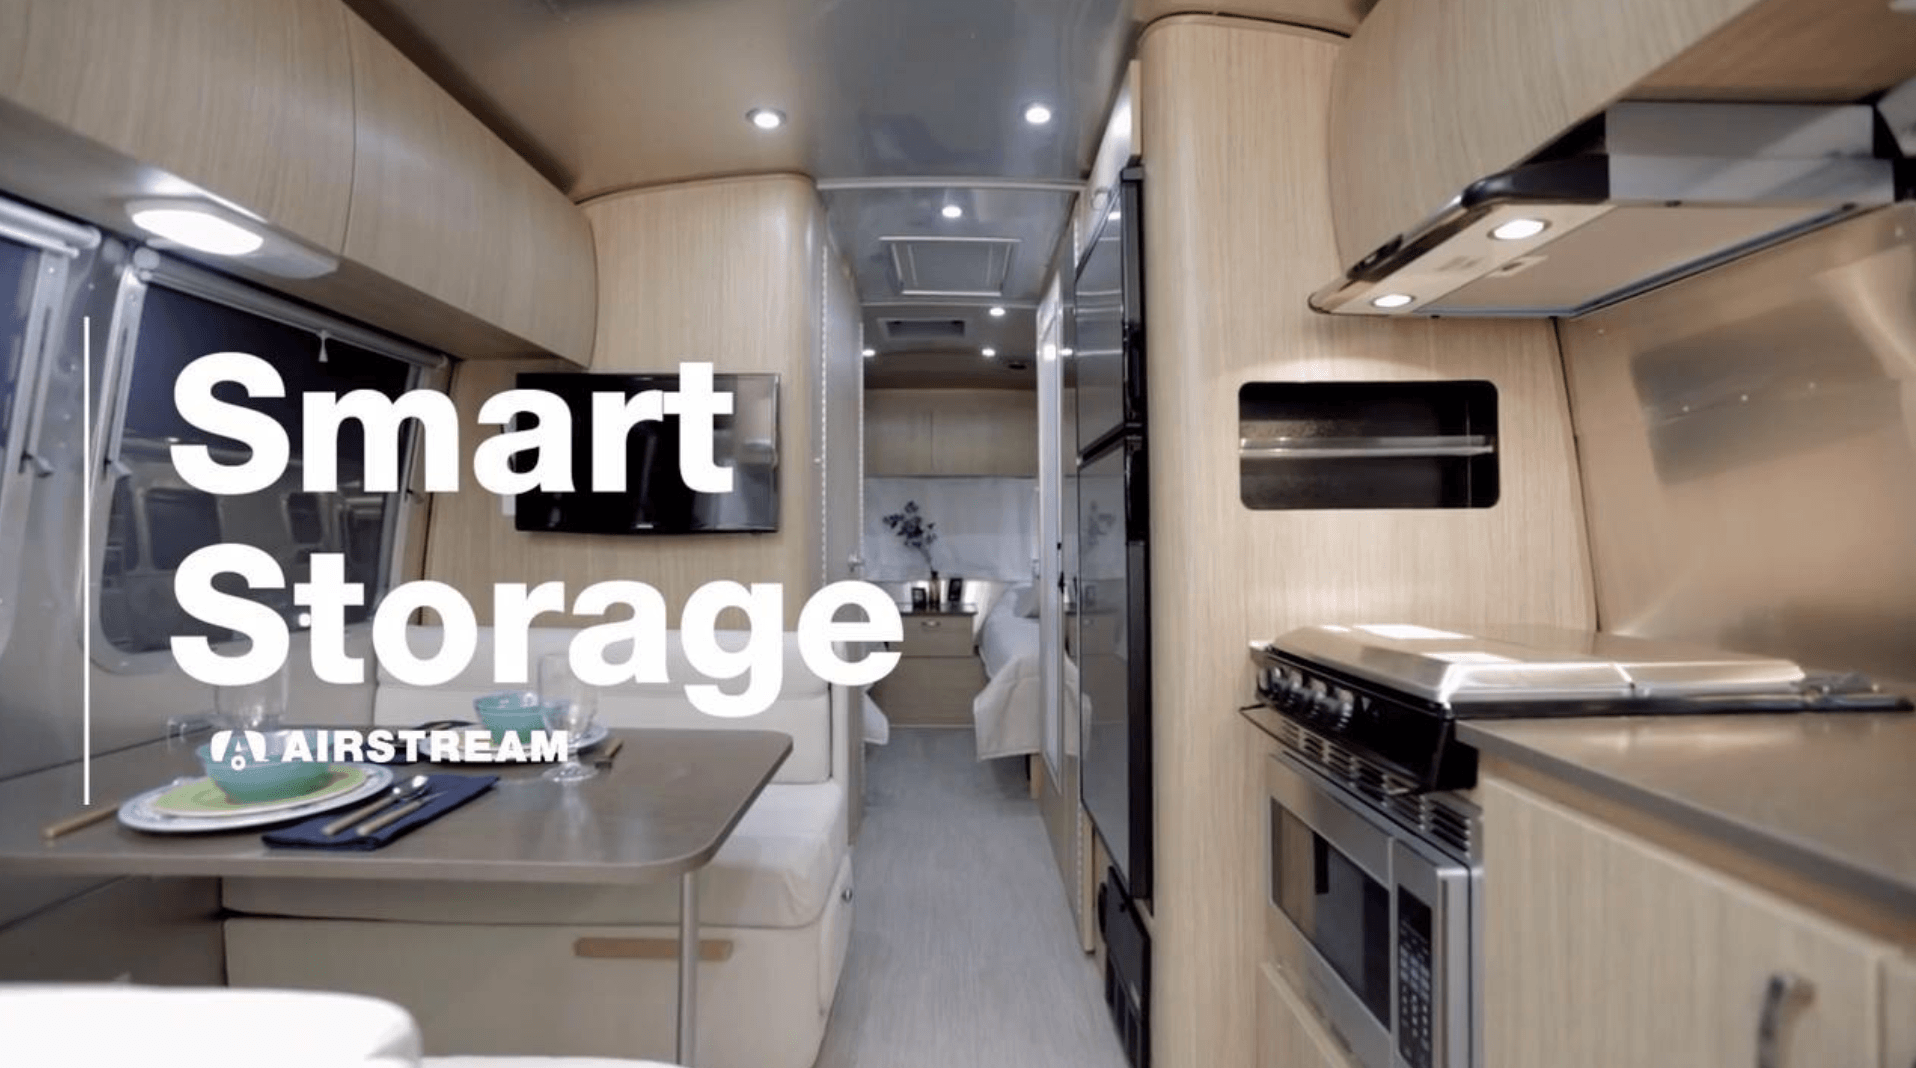 Airstream Travel Trailers A Place For Everything You Need